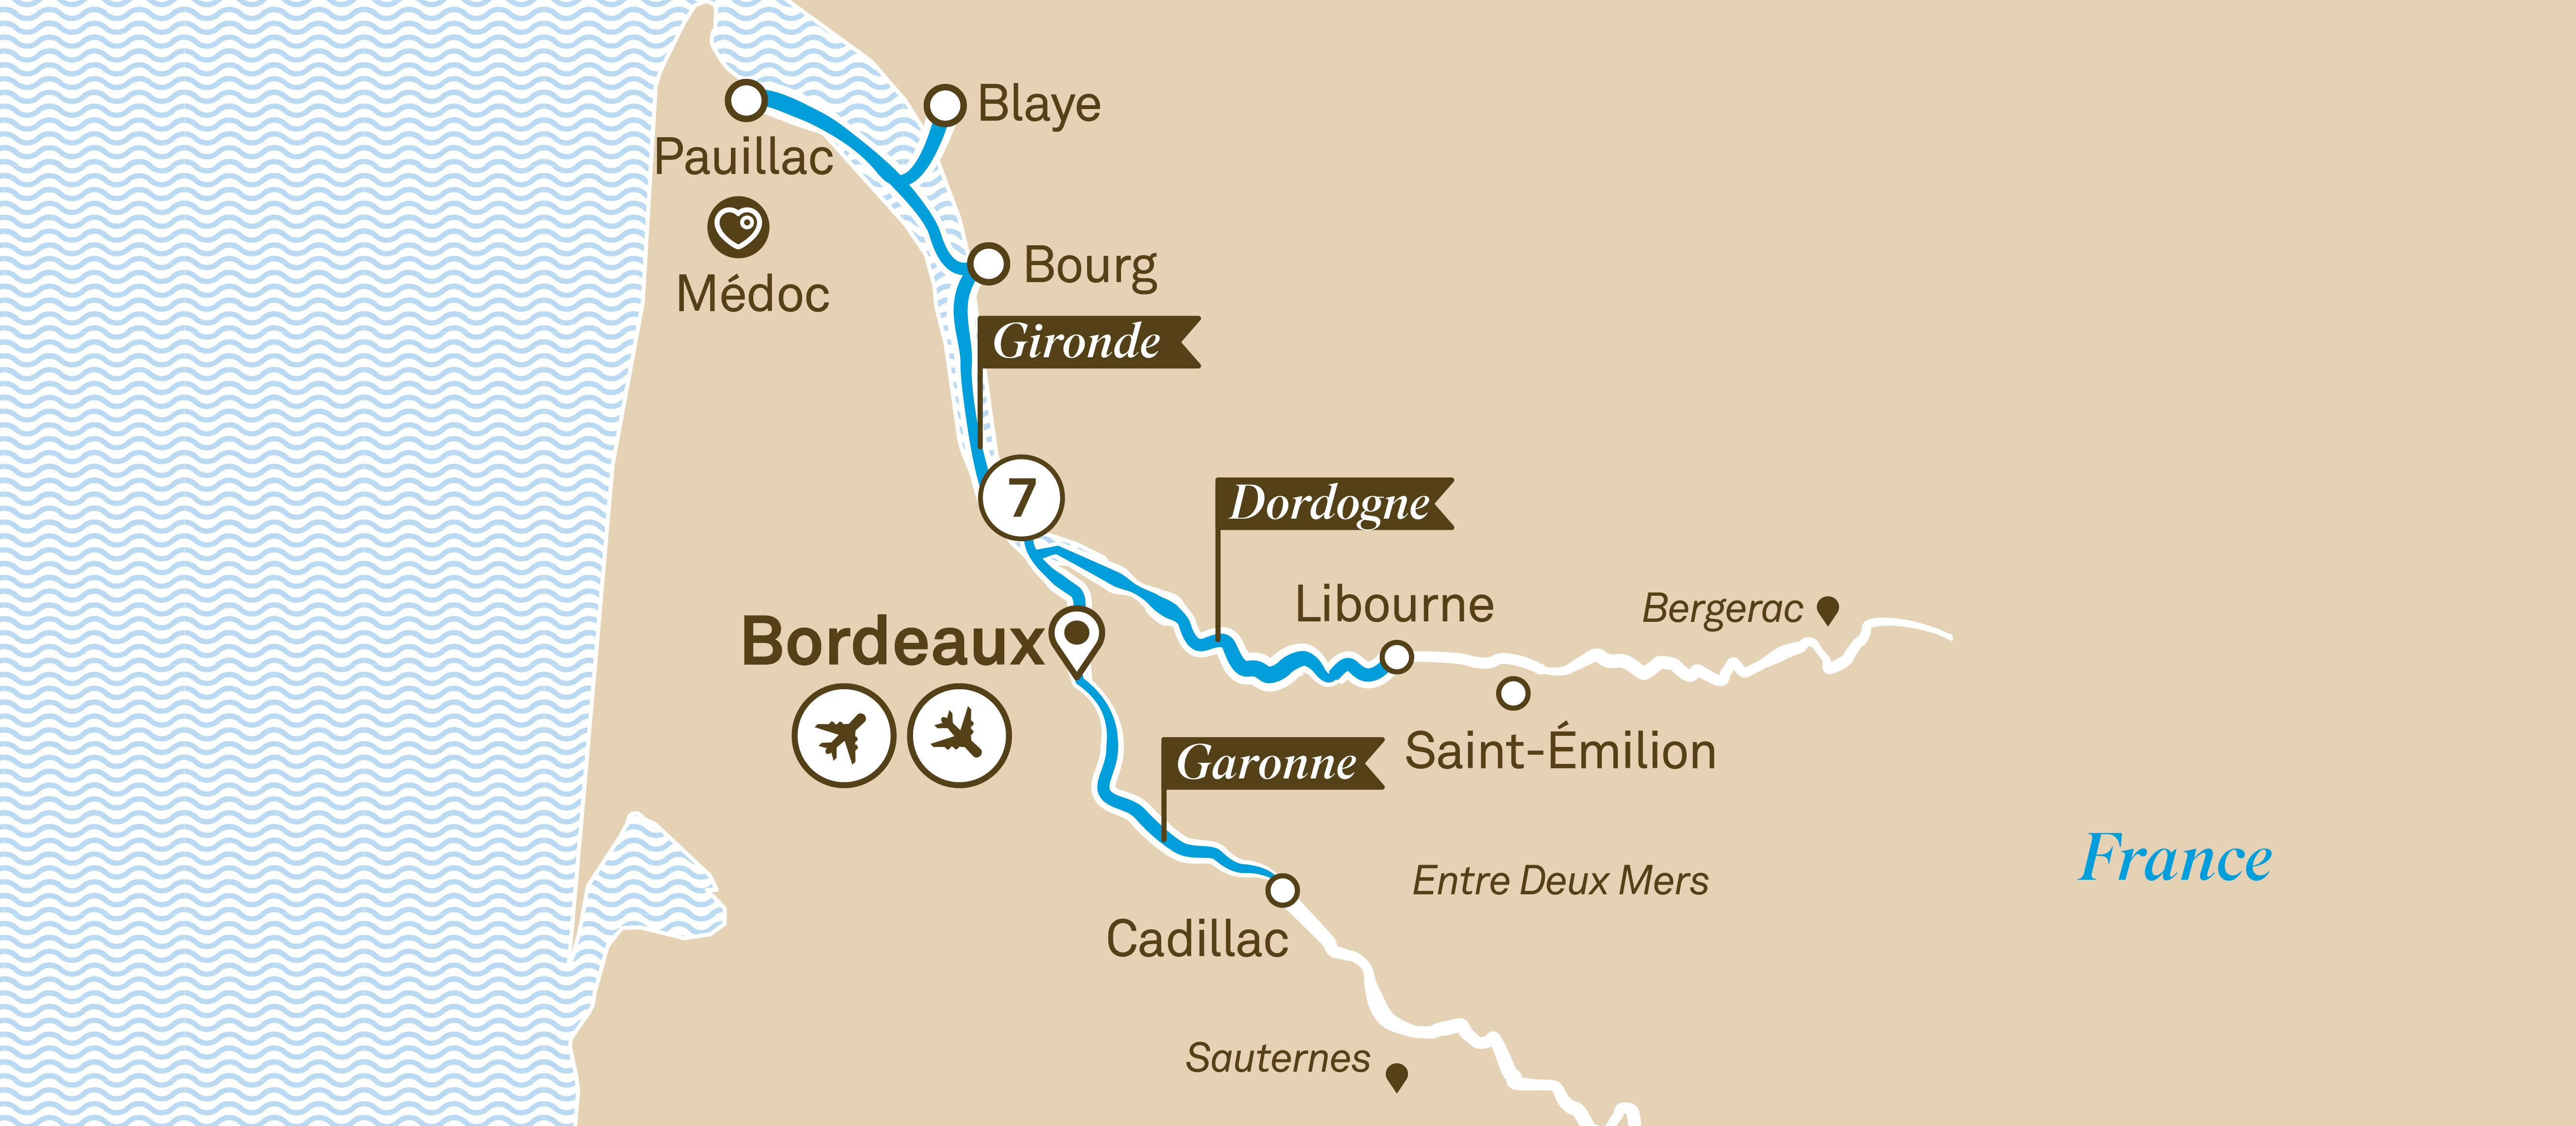 Itinerary map of Bordeaux Affair